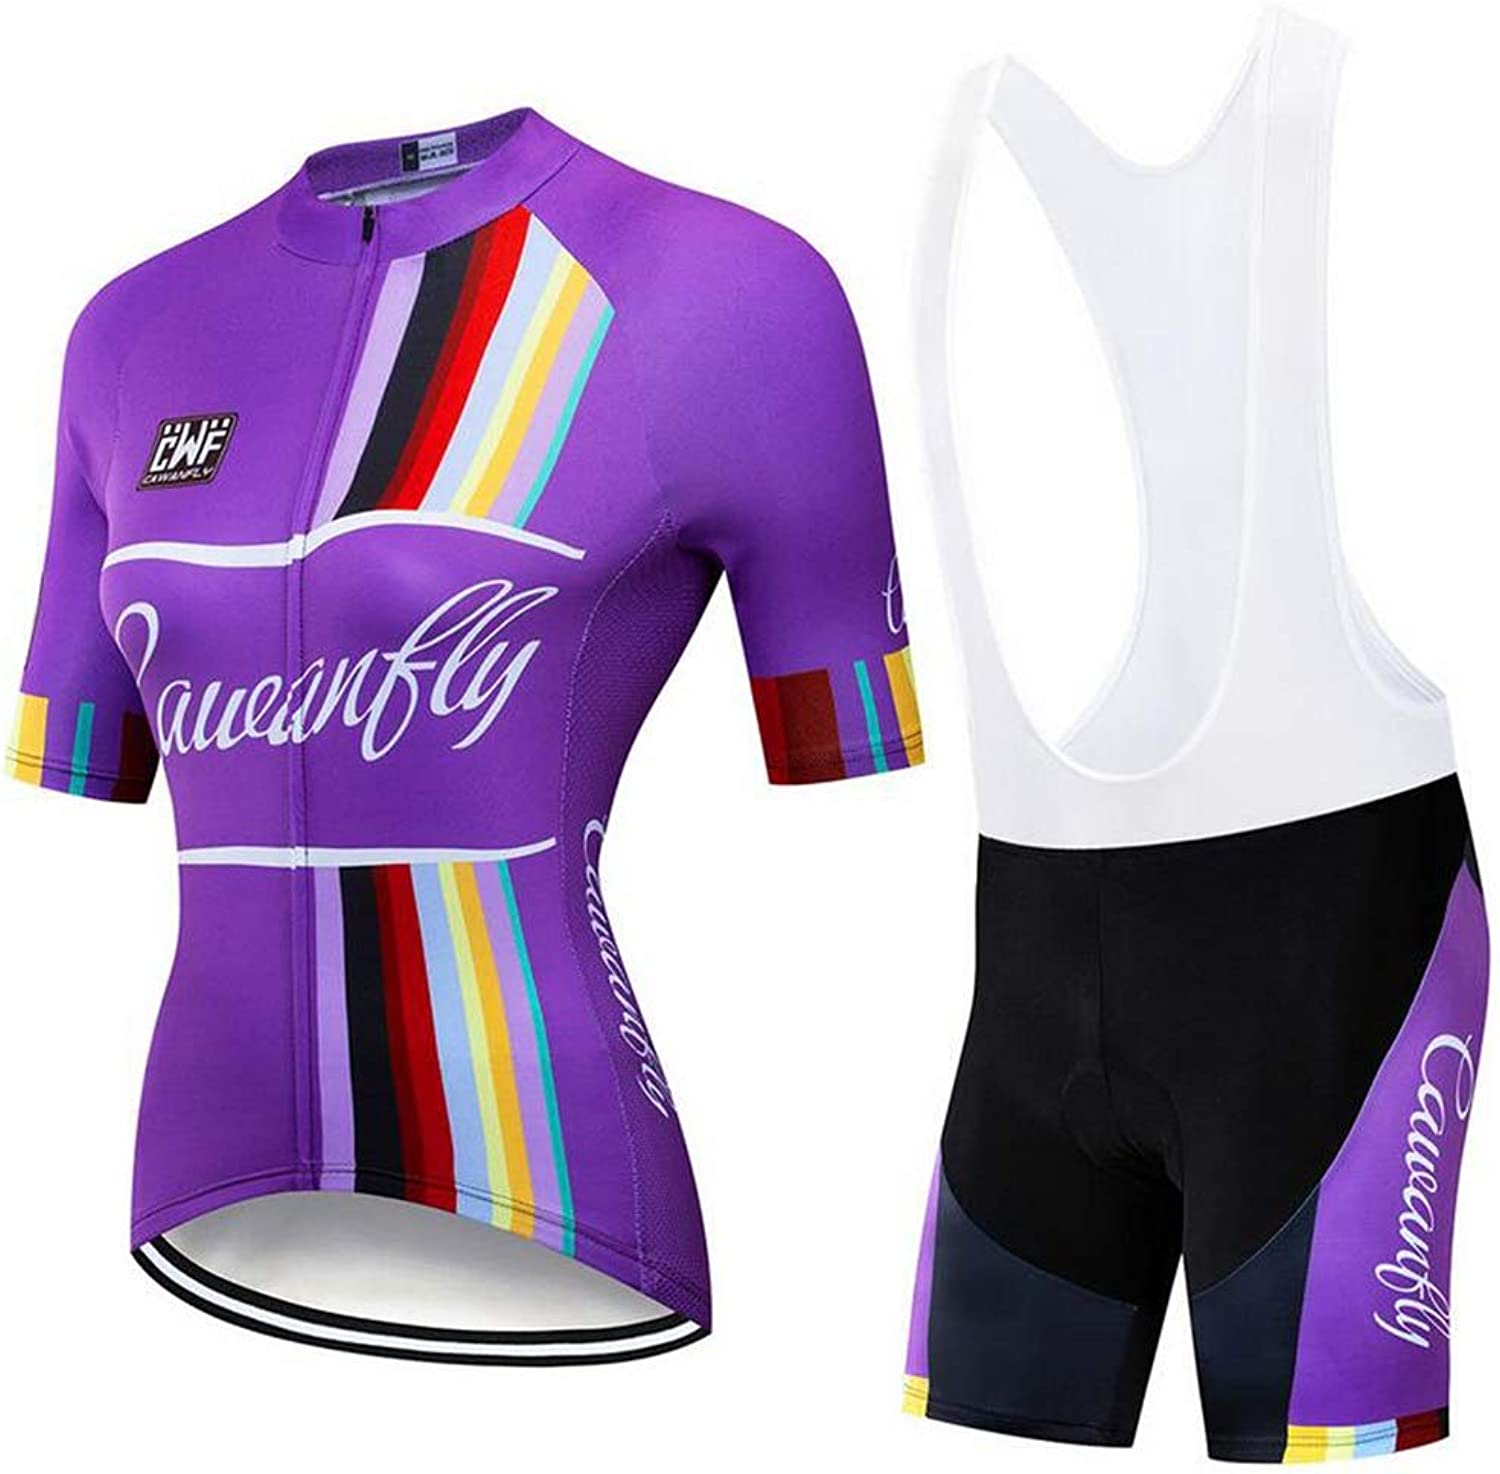 Cycling Jersey Women Mountain Bike Jersey Shirts Short Sleeve Breathable Quick Dry + Riding Shorts Tights Pants